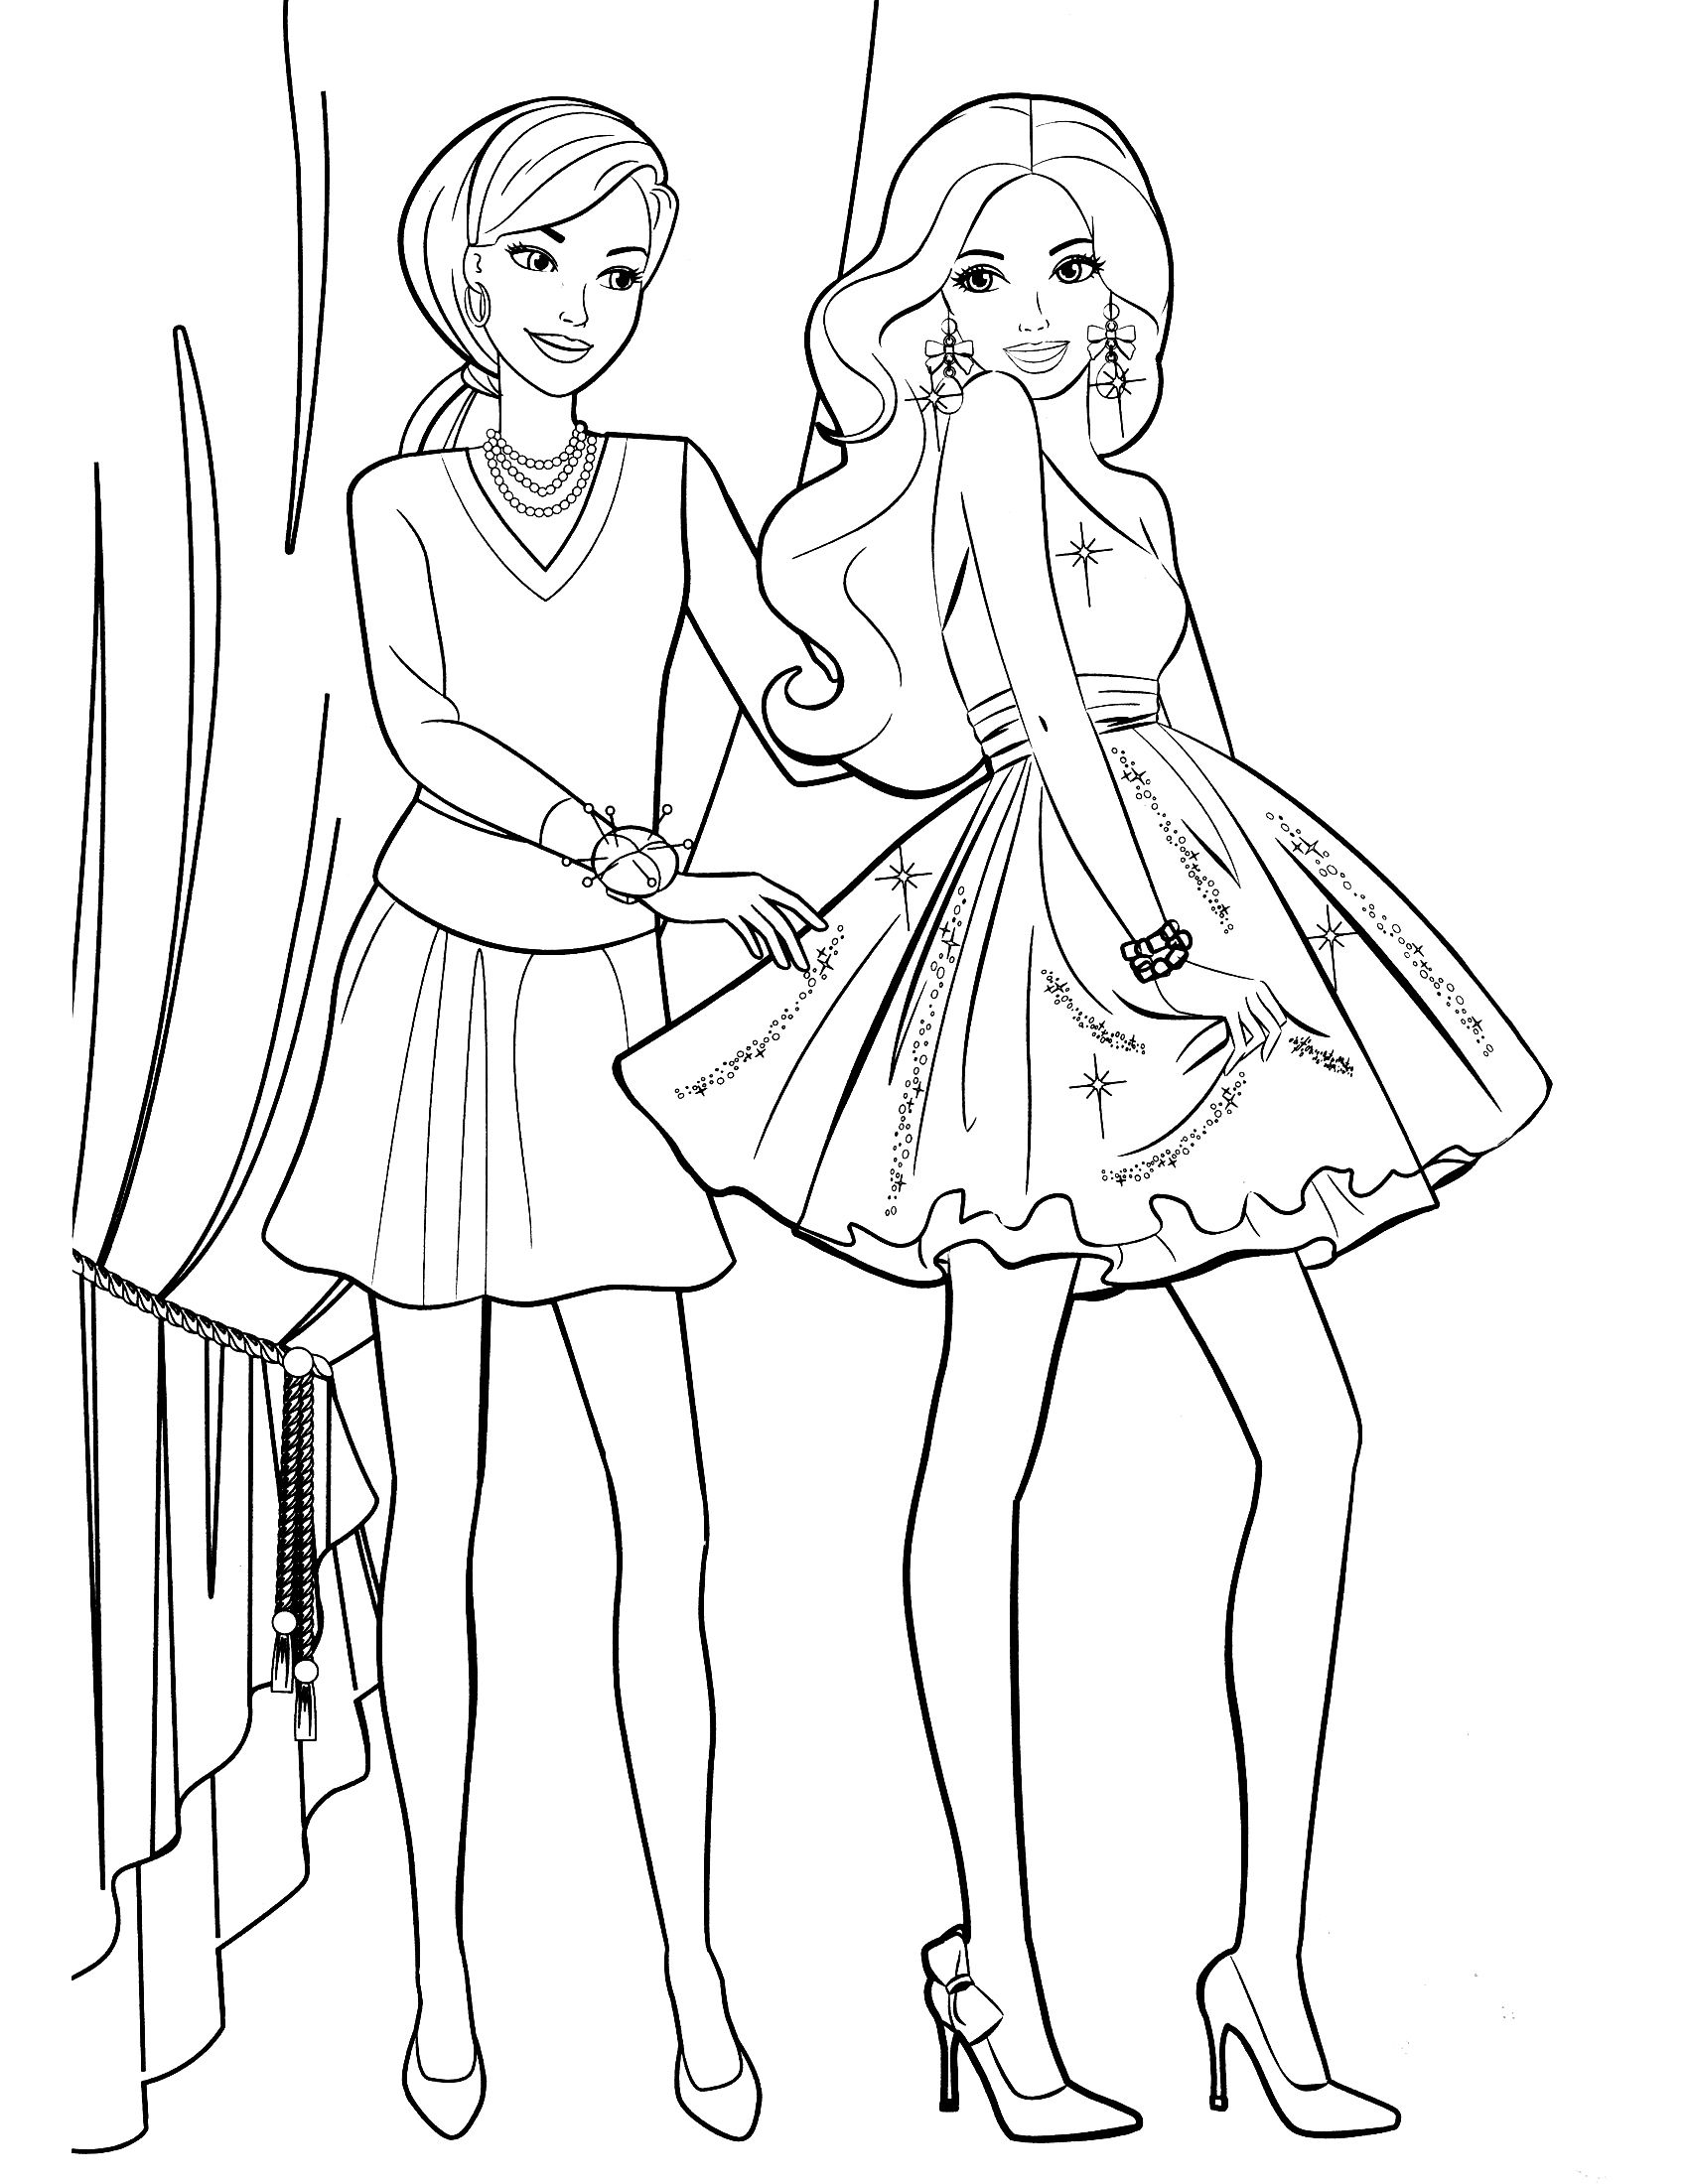 Barbie colouring in online free - Awesome Barbie Printable Coloring Pages For Kids Girls And Boys